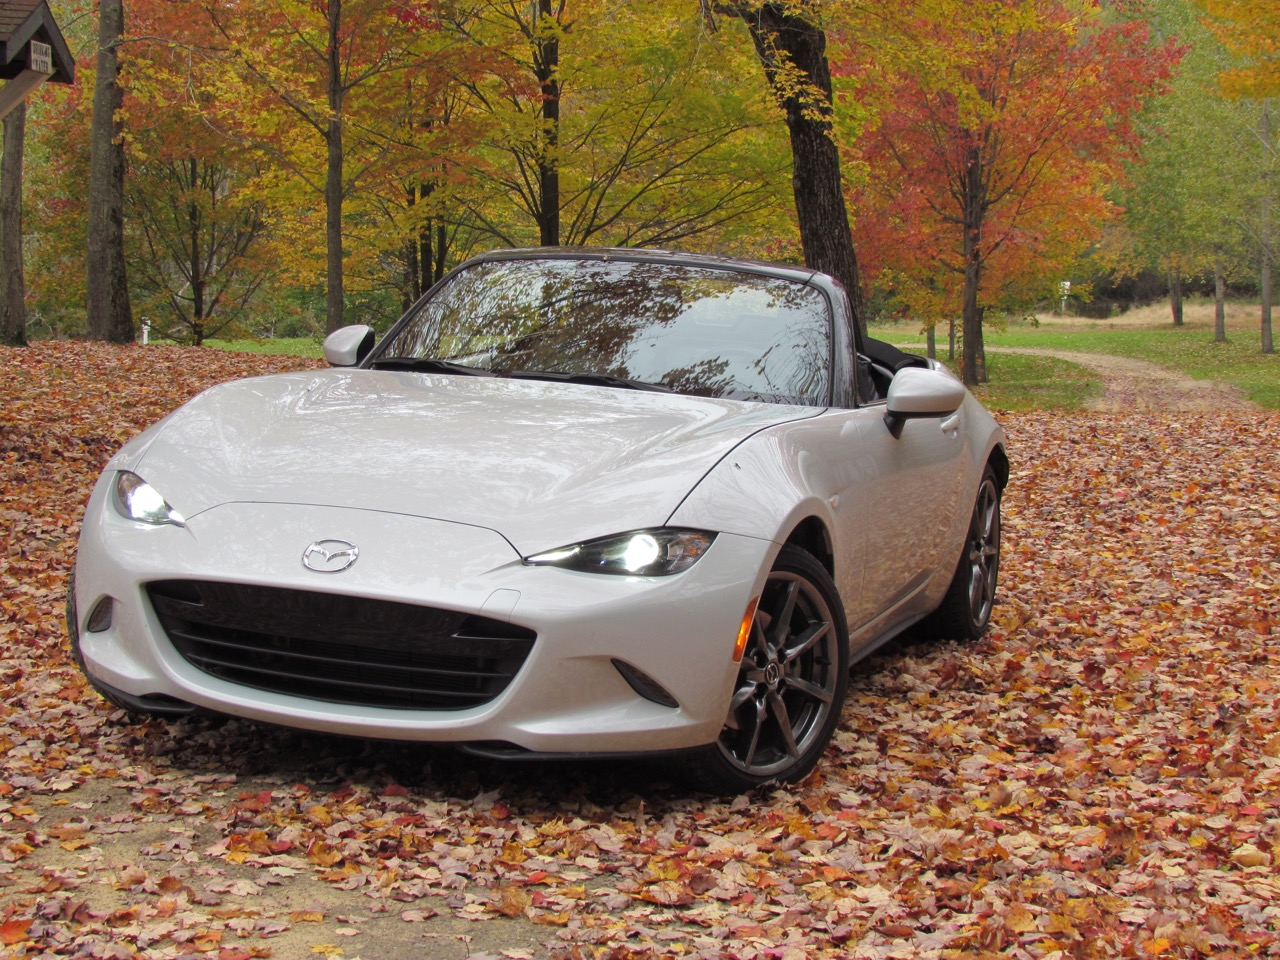 2016 Mazda Mx 5 Miata Has Seat Heaters To Keep You Warm With The Top